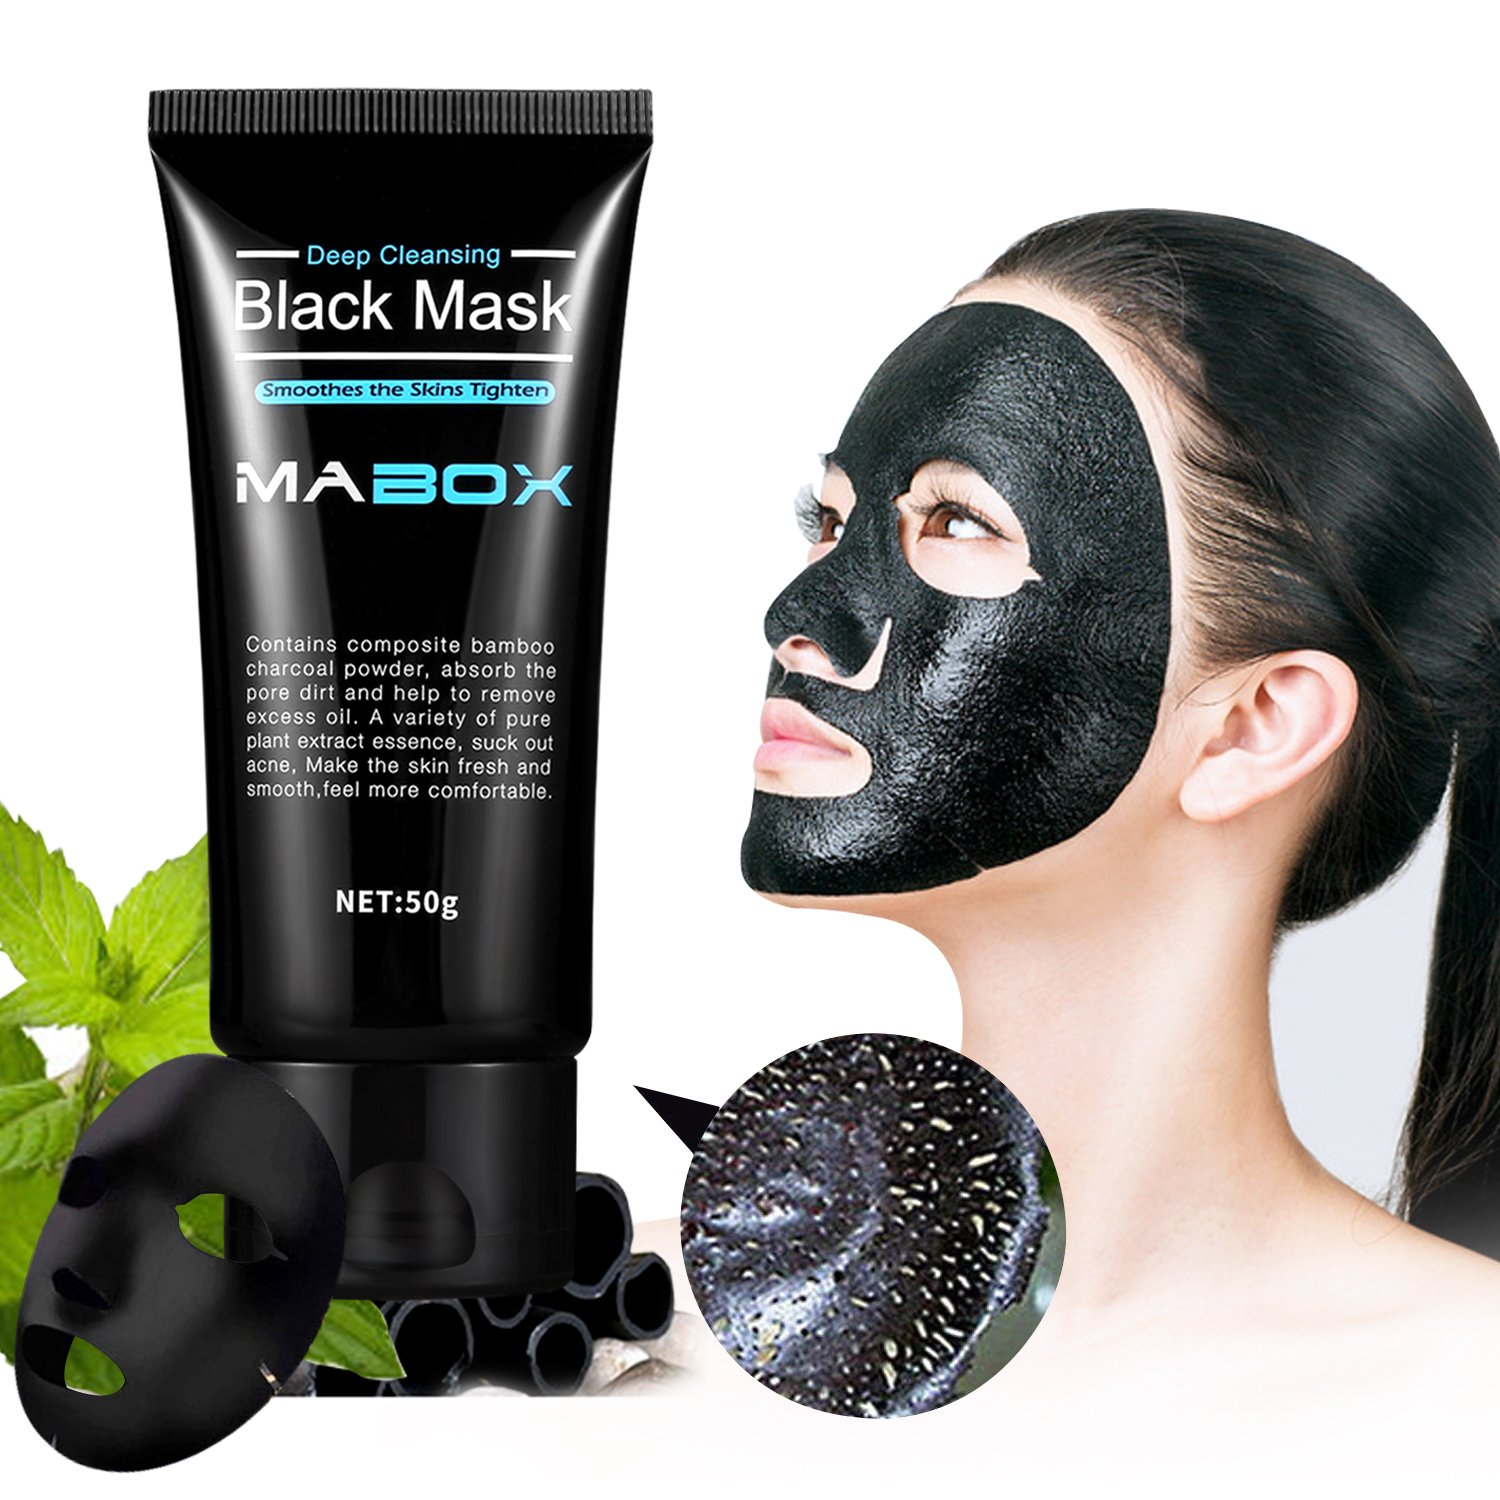 Facial cleaning for blacks